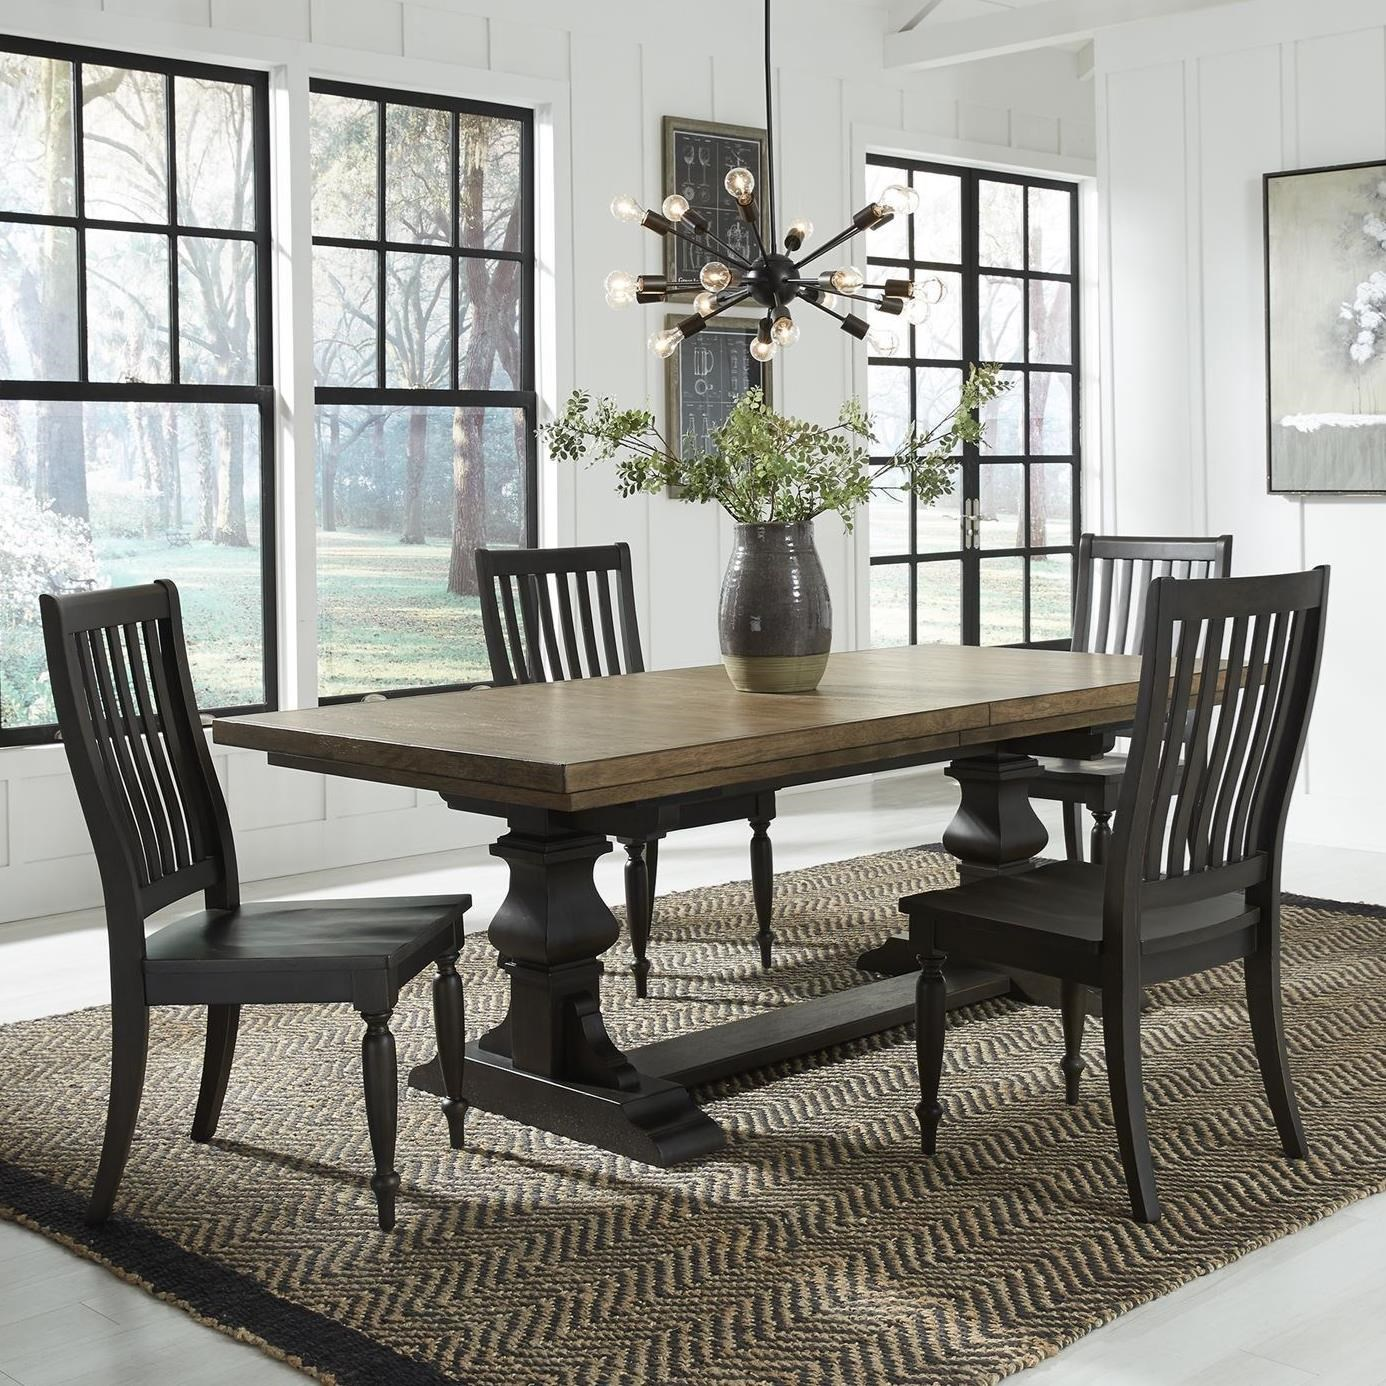 Harvest Home 5-Piece Trestle Table Set by Liberty Furniture at Northeast Factory Direct